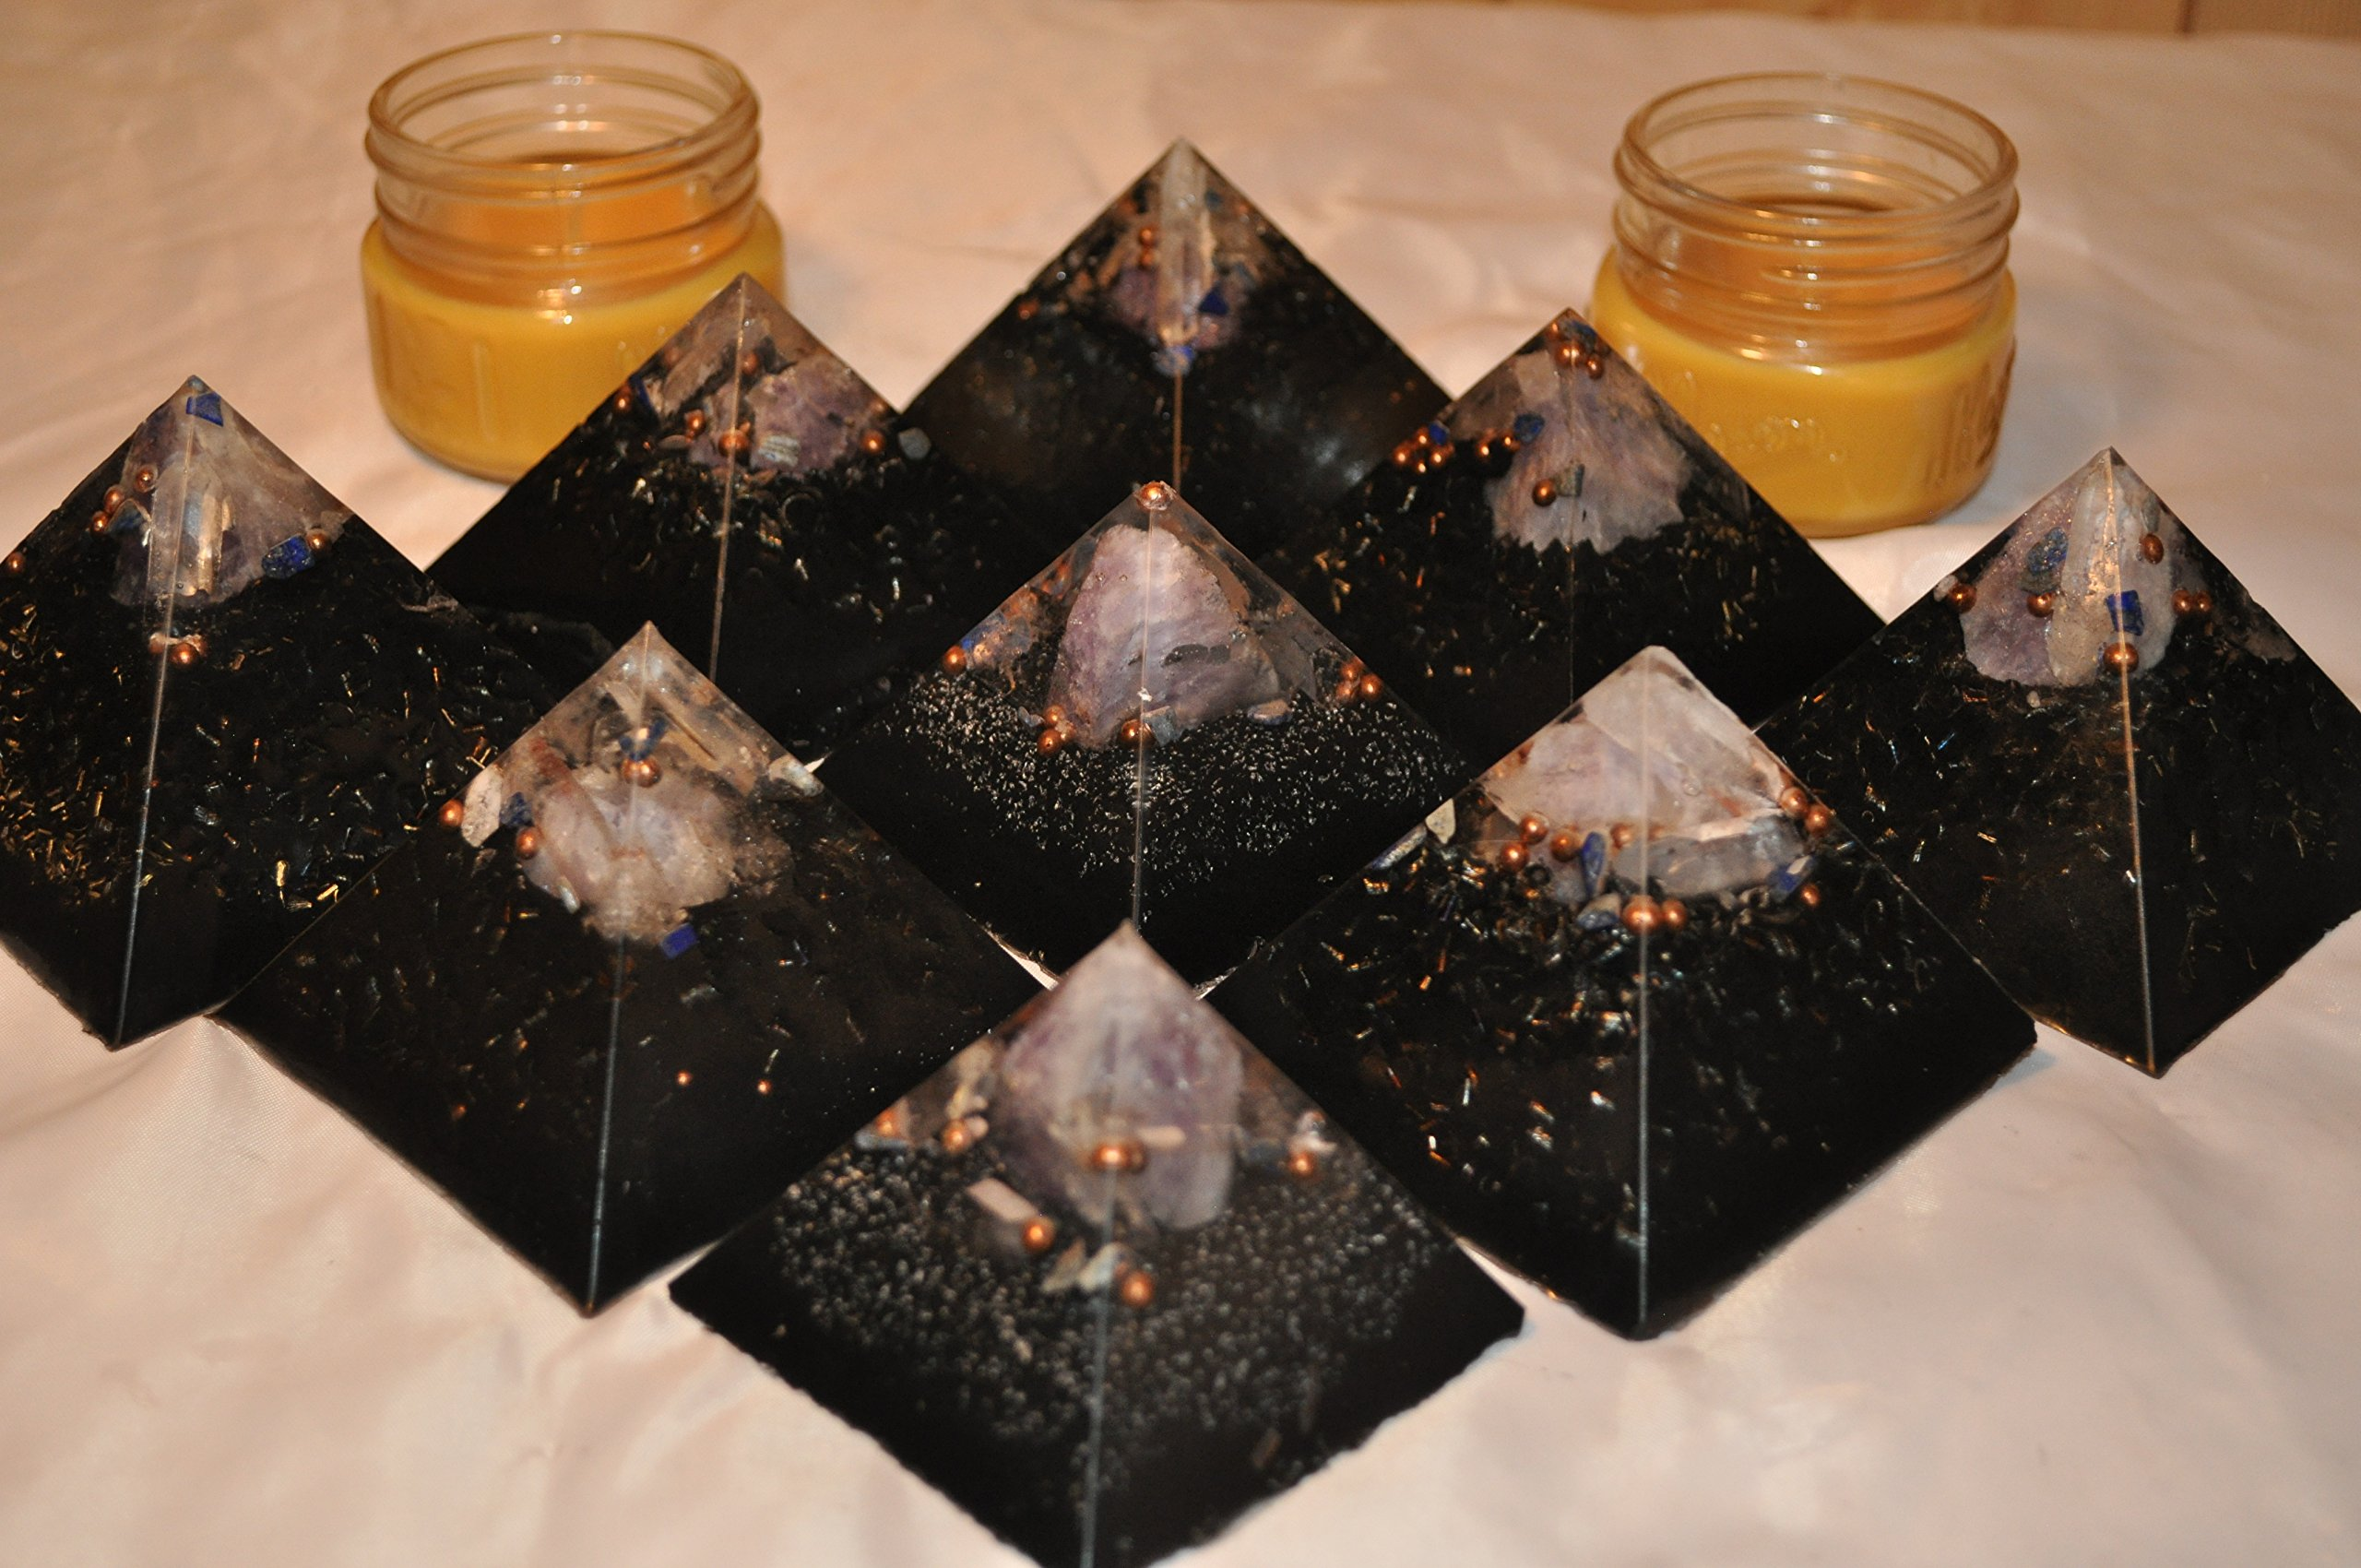 set of 9 aesthetic QUARTZ CRYSTAL ORGONE ENERGY pyramids FOR EMF PROTECTION, HOME OR OFFICE DECORATION, IMPROVED SLEEP makes perfect and complete home system for maximum protection from WiFi and EMF